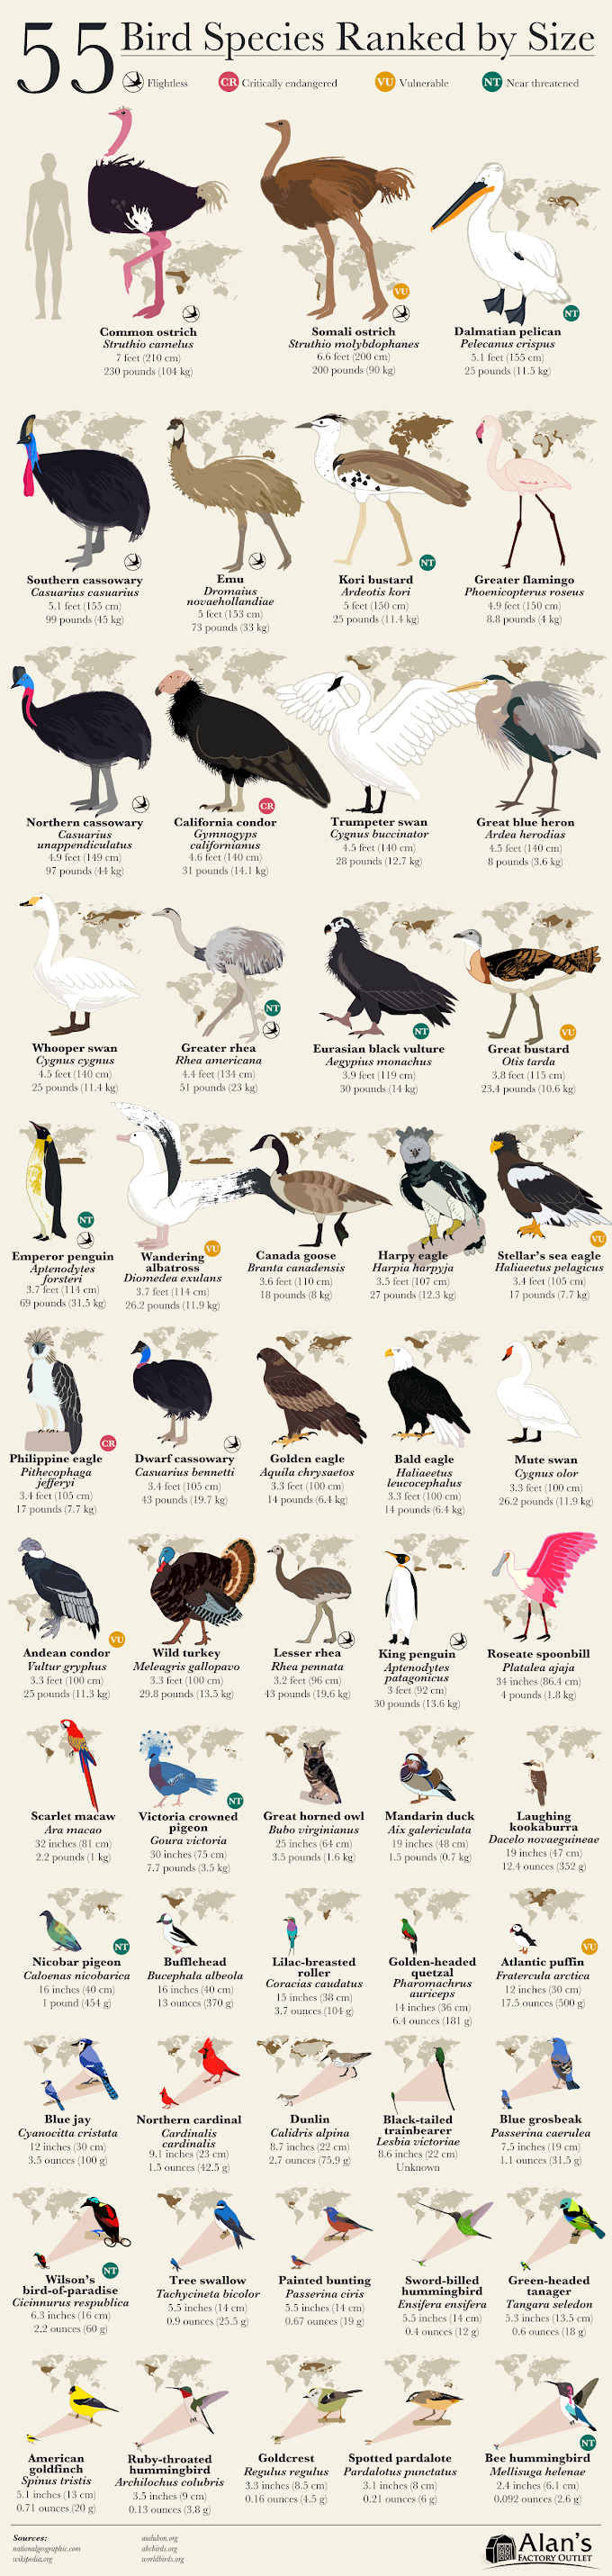 Infographic : 55 bird species ranked by size